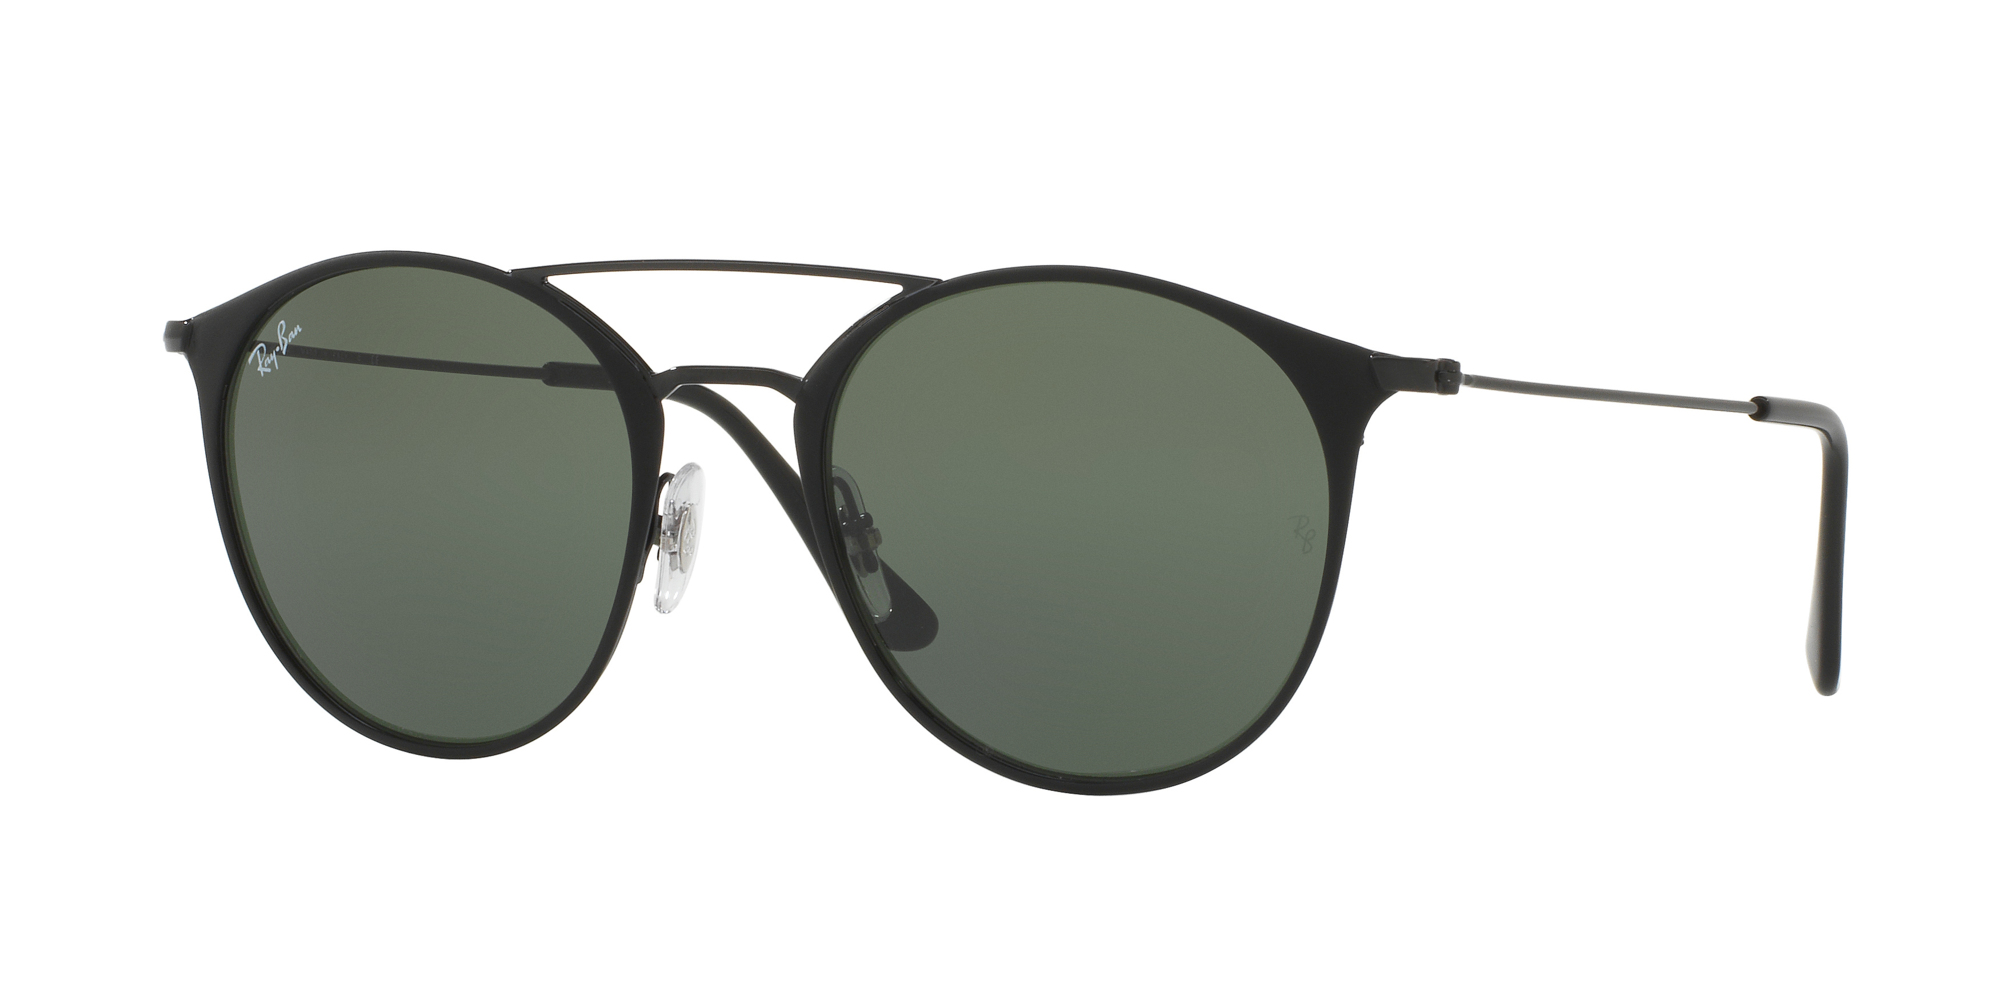 RAY-BAN DOUBLE BRIDGE RB 3546 186-360